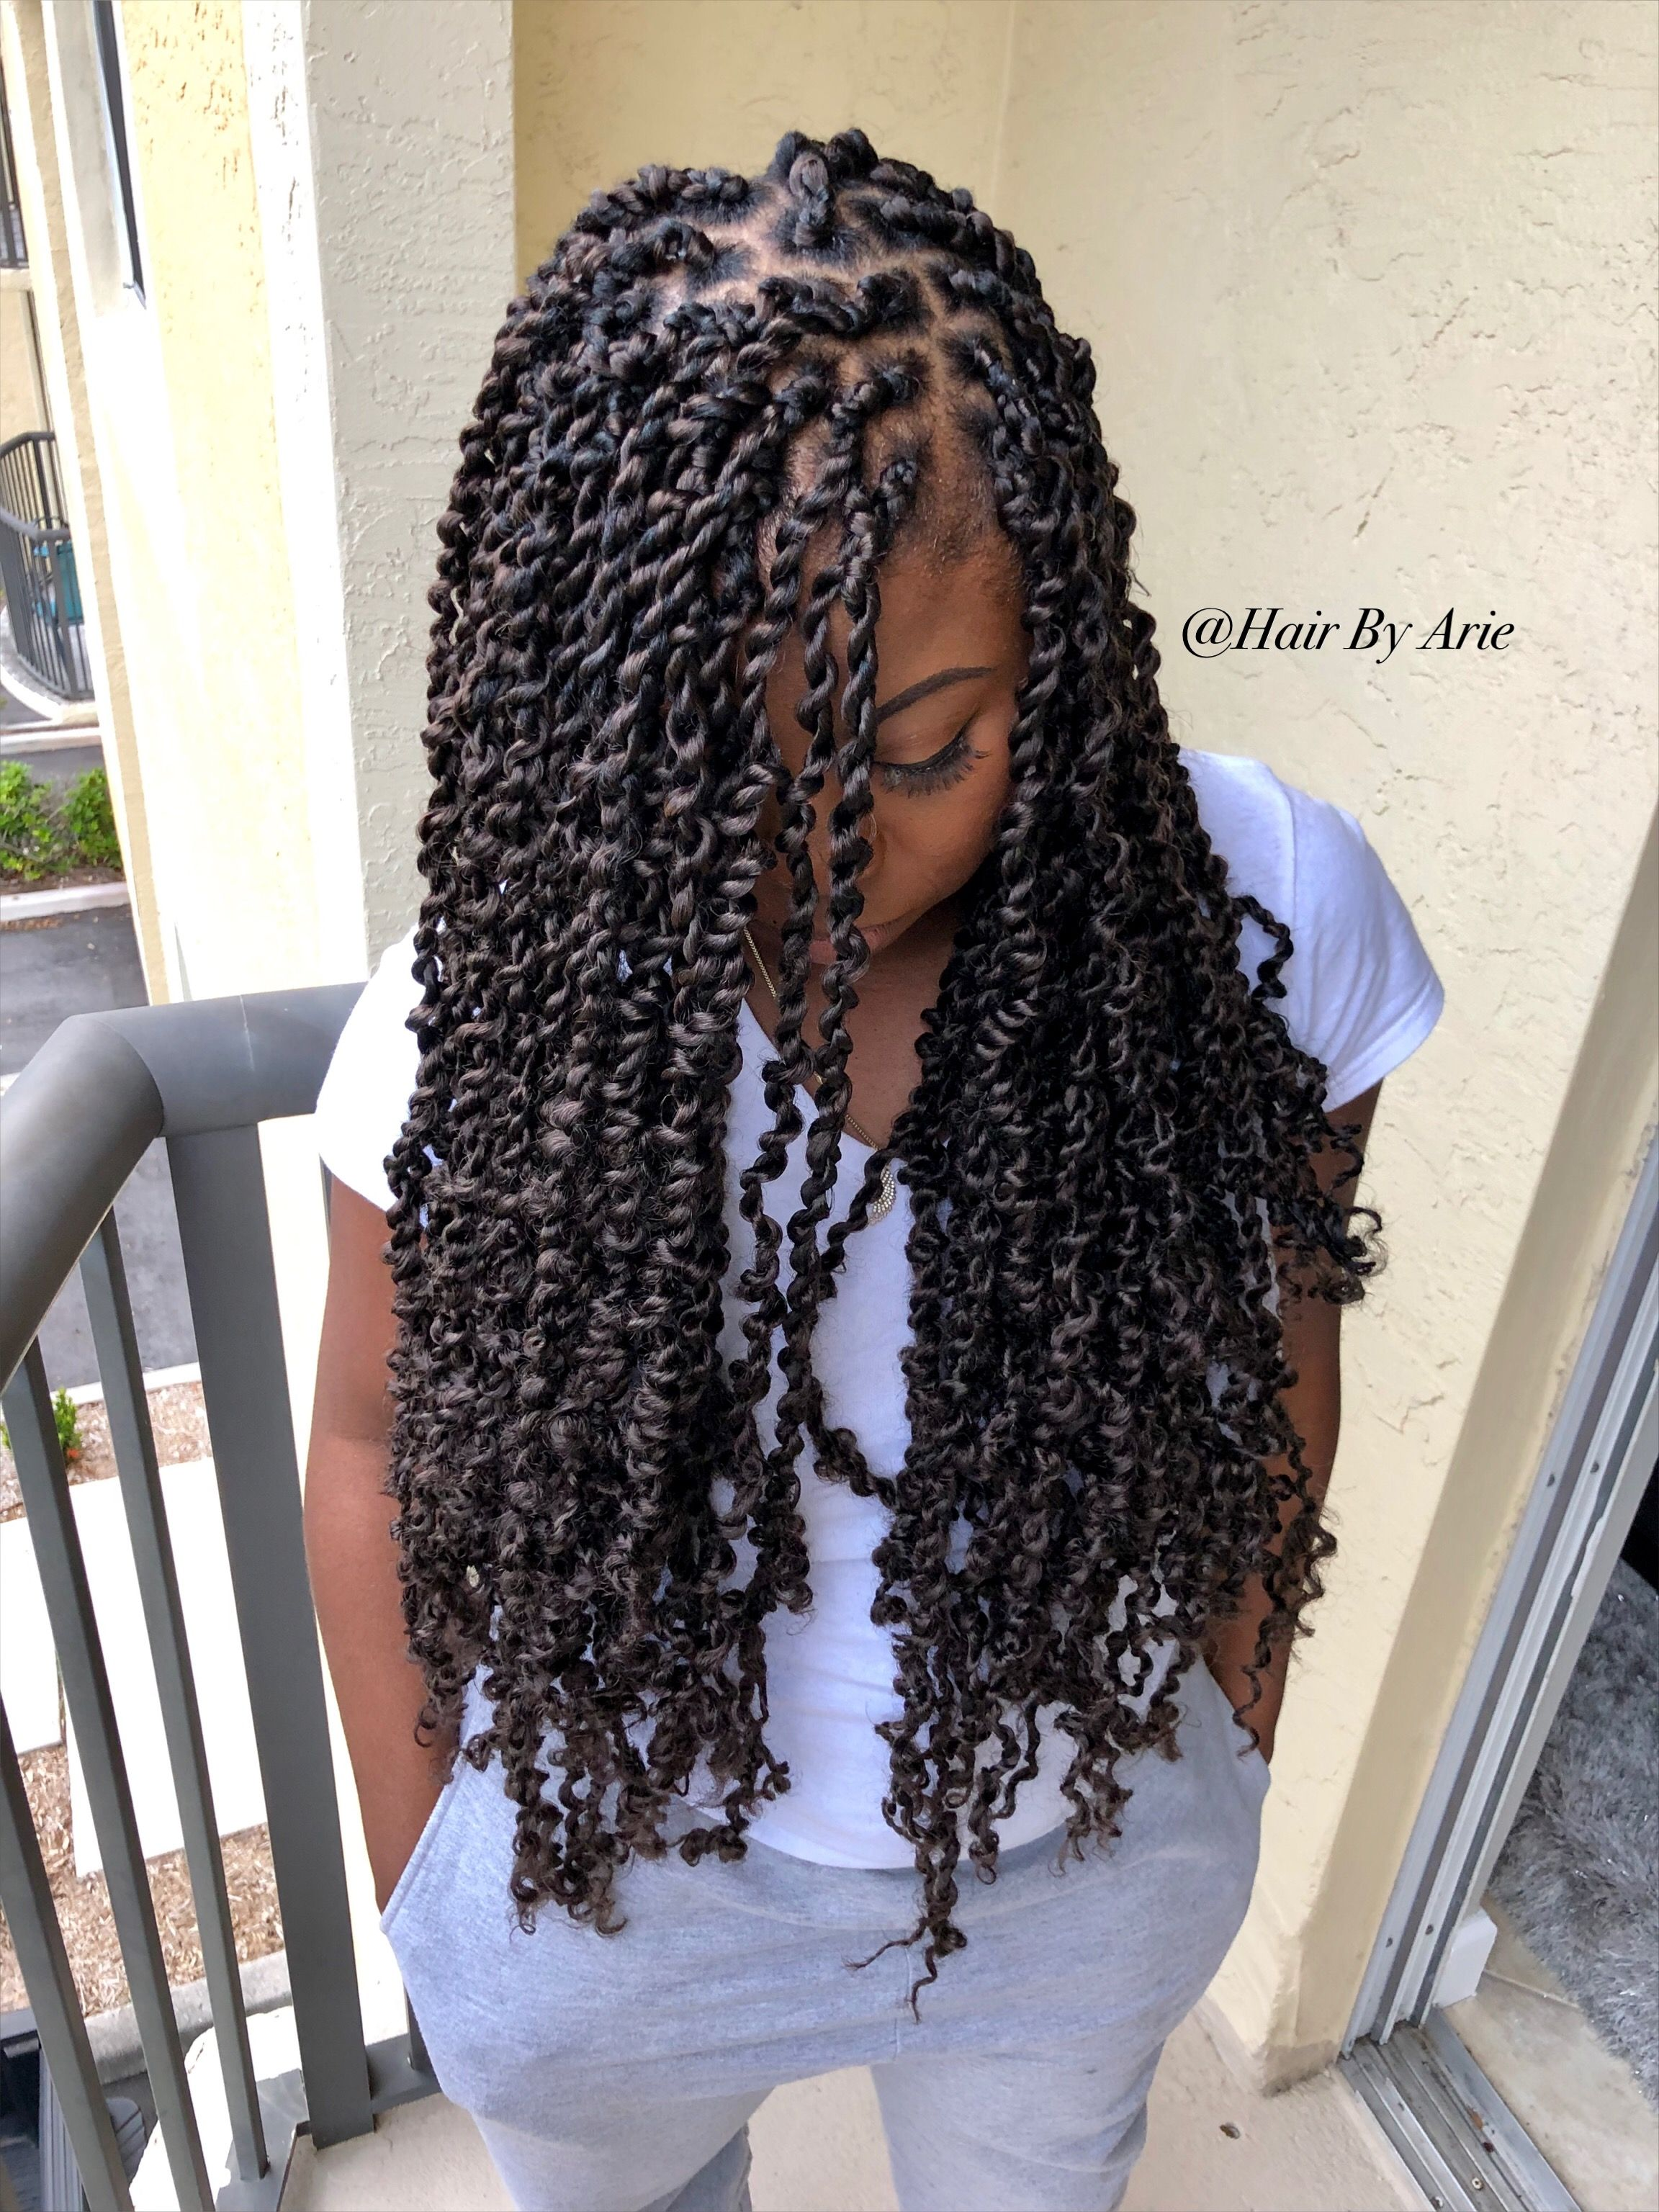 Passion Twists Hair By Arie Hair By Arie Natural Hair Styles Hair Styles Twist Hairstyles